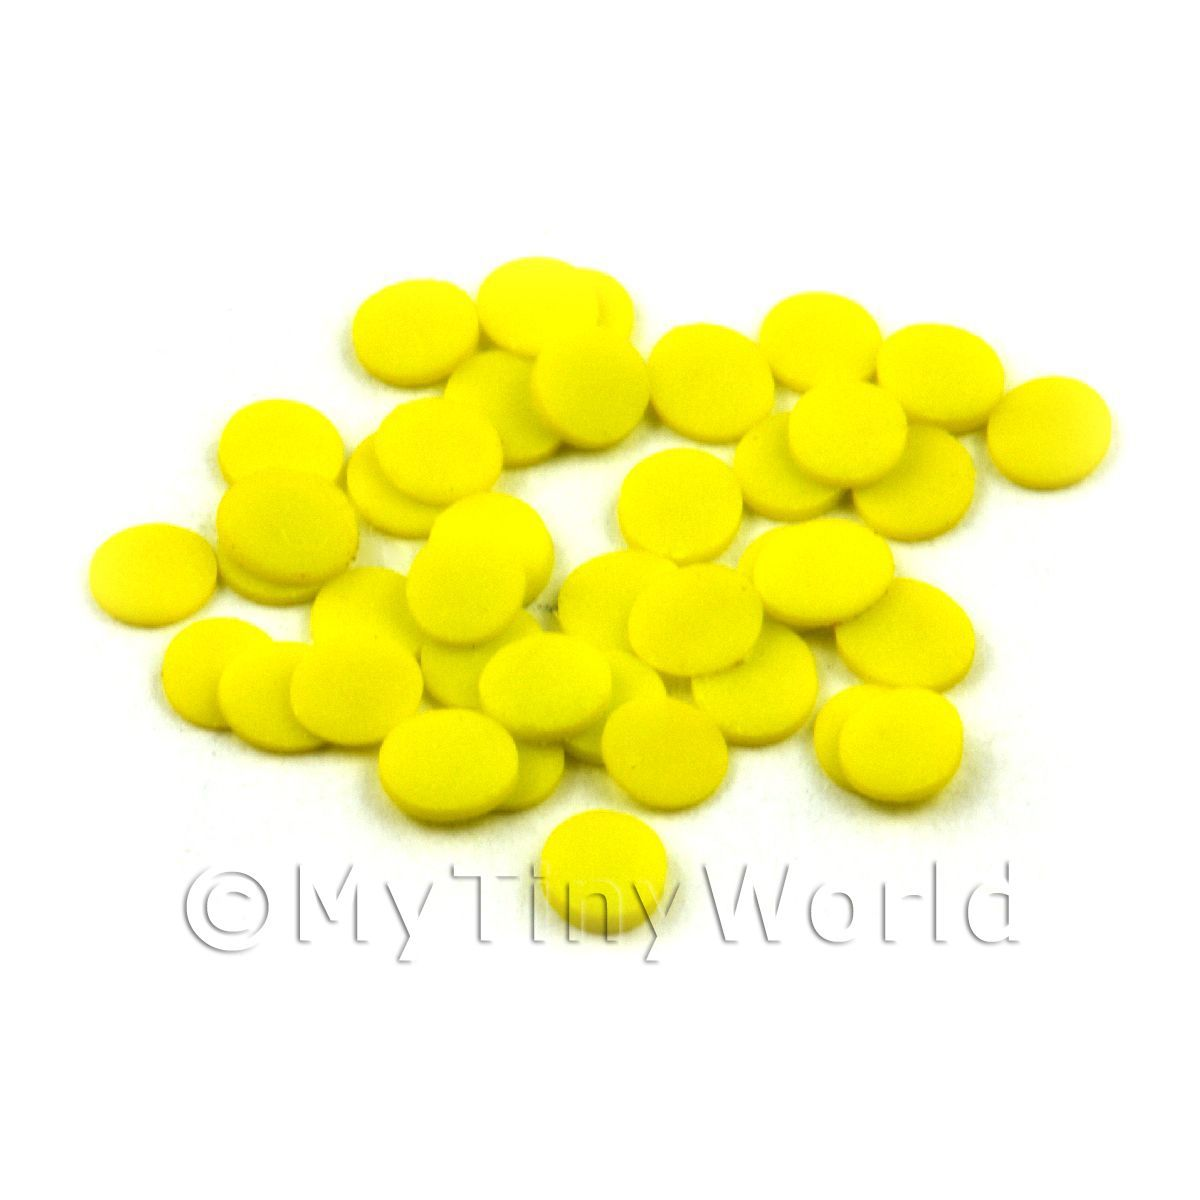 50 Yellow Polka Dot Cane Slices - Nail Art (11NS20)